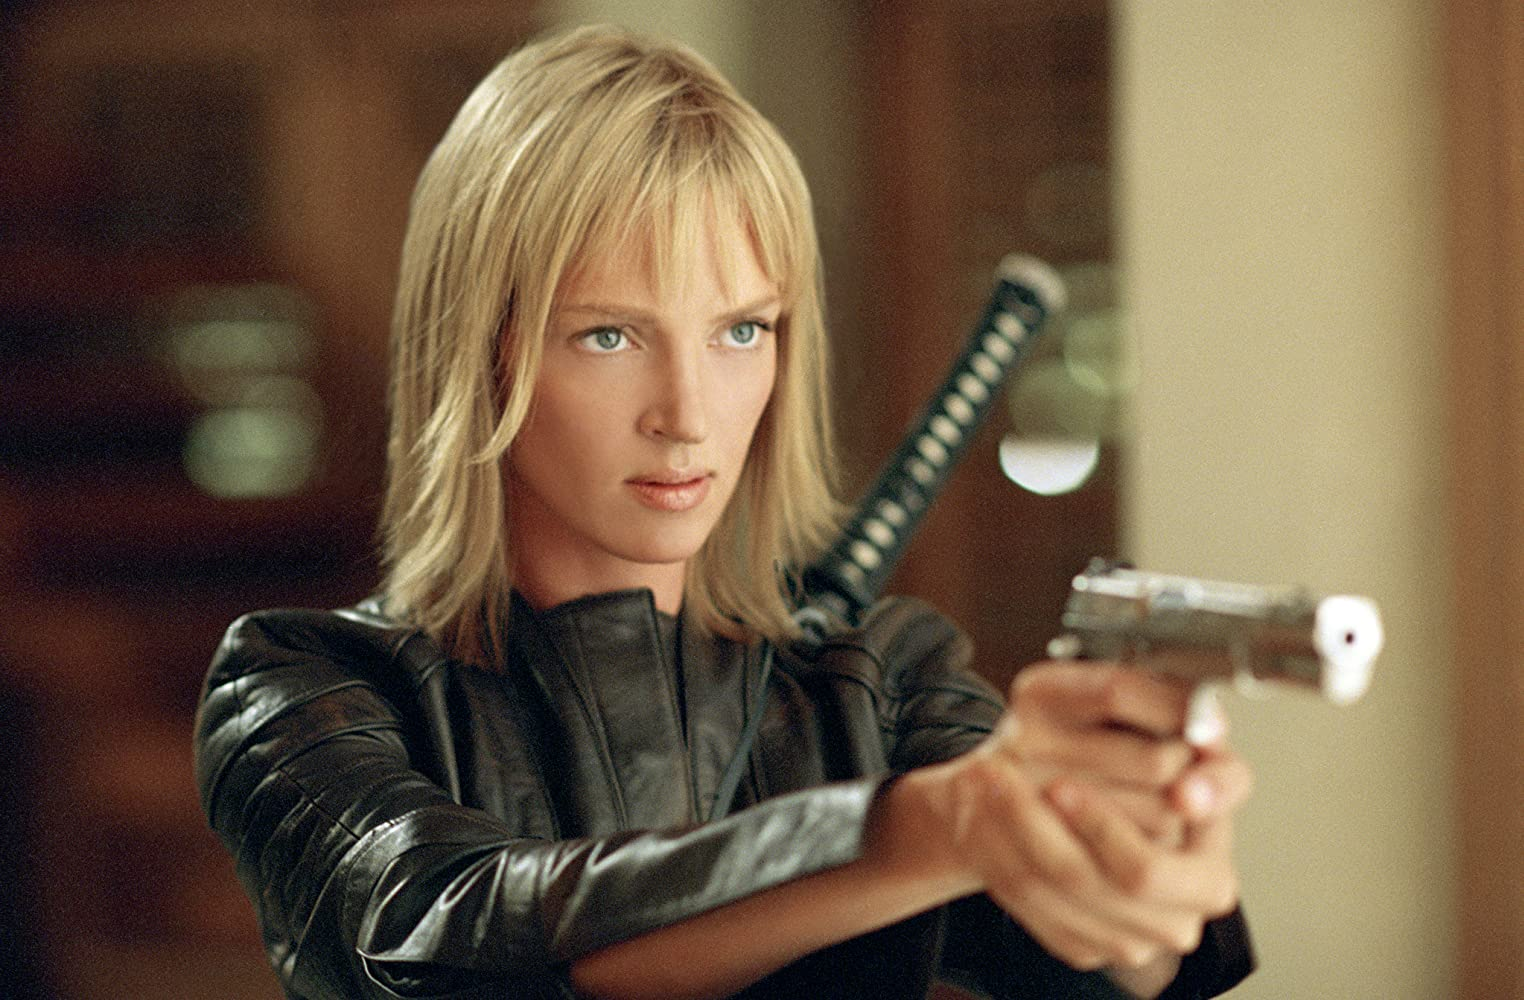 Uma Thurman in Kill Bill: Vol. 2 (2004)